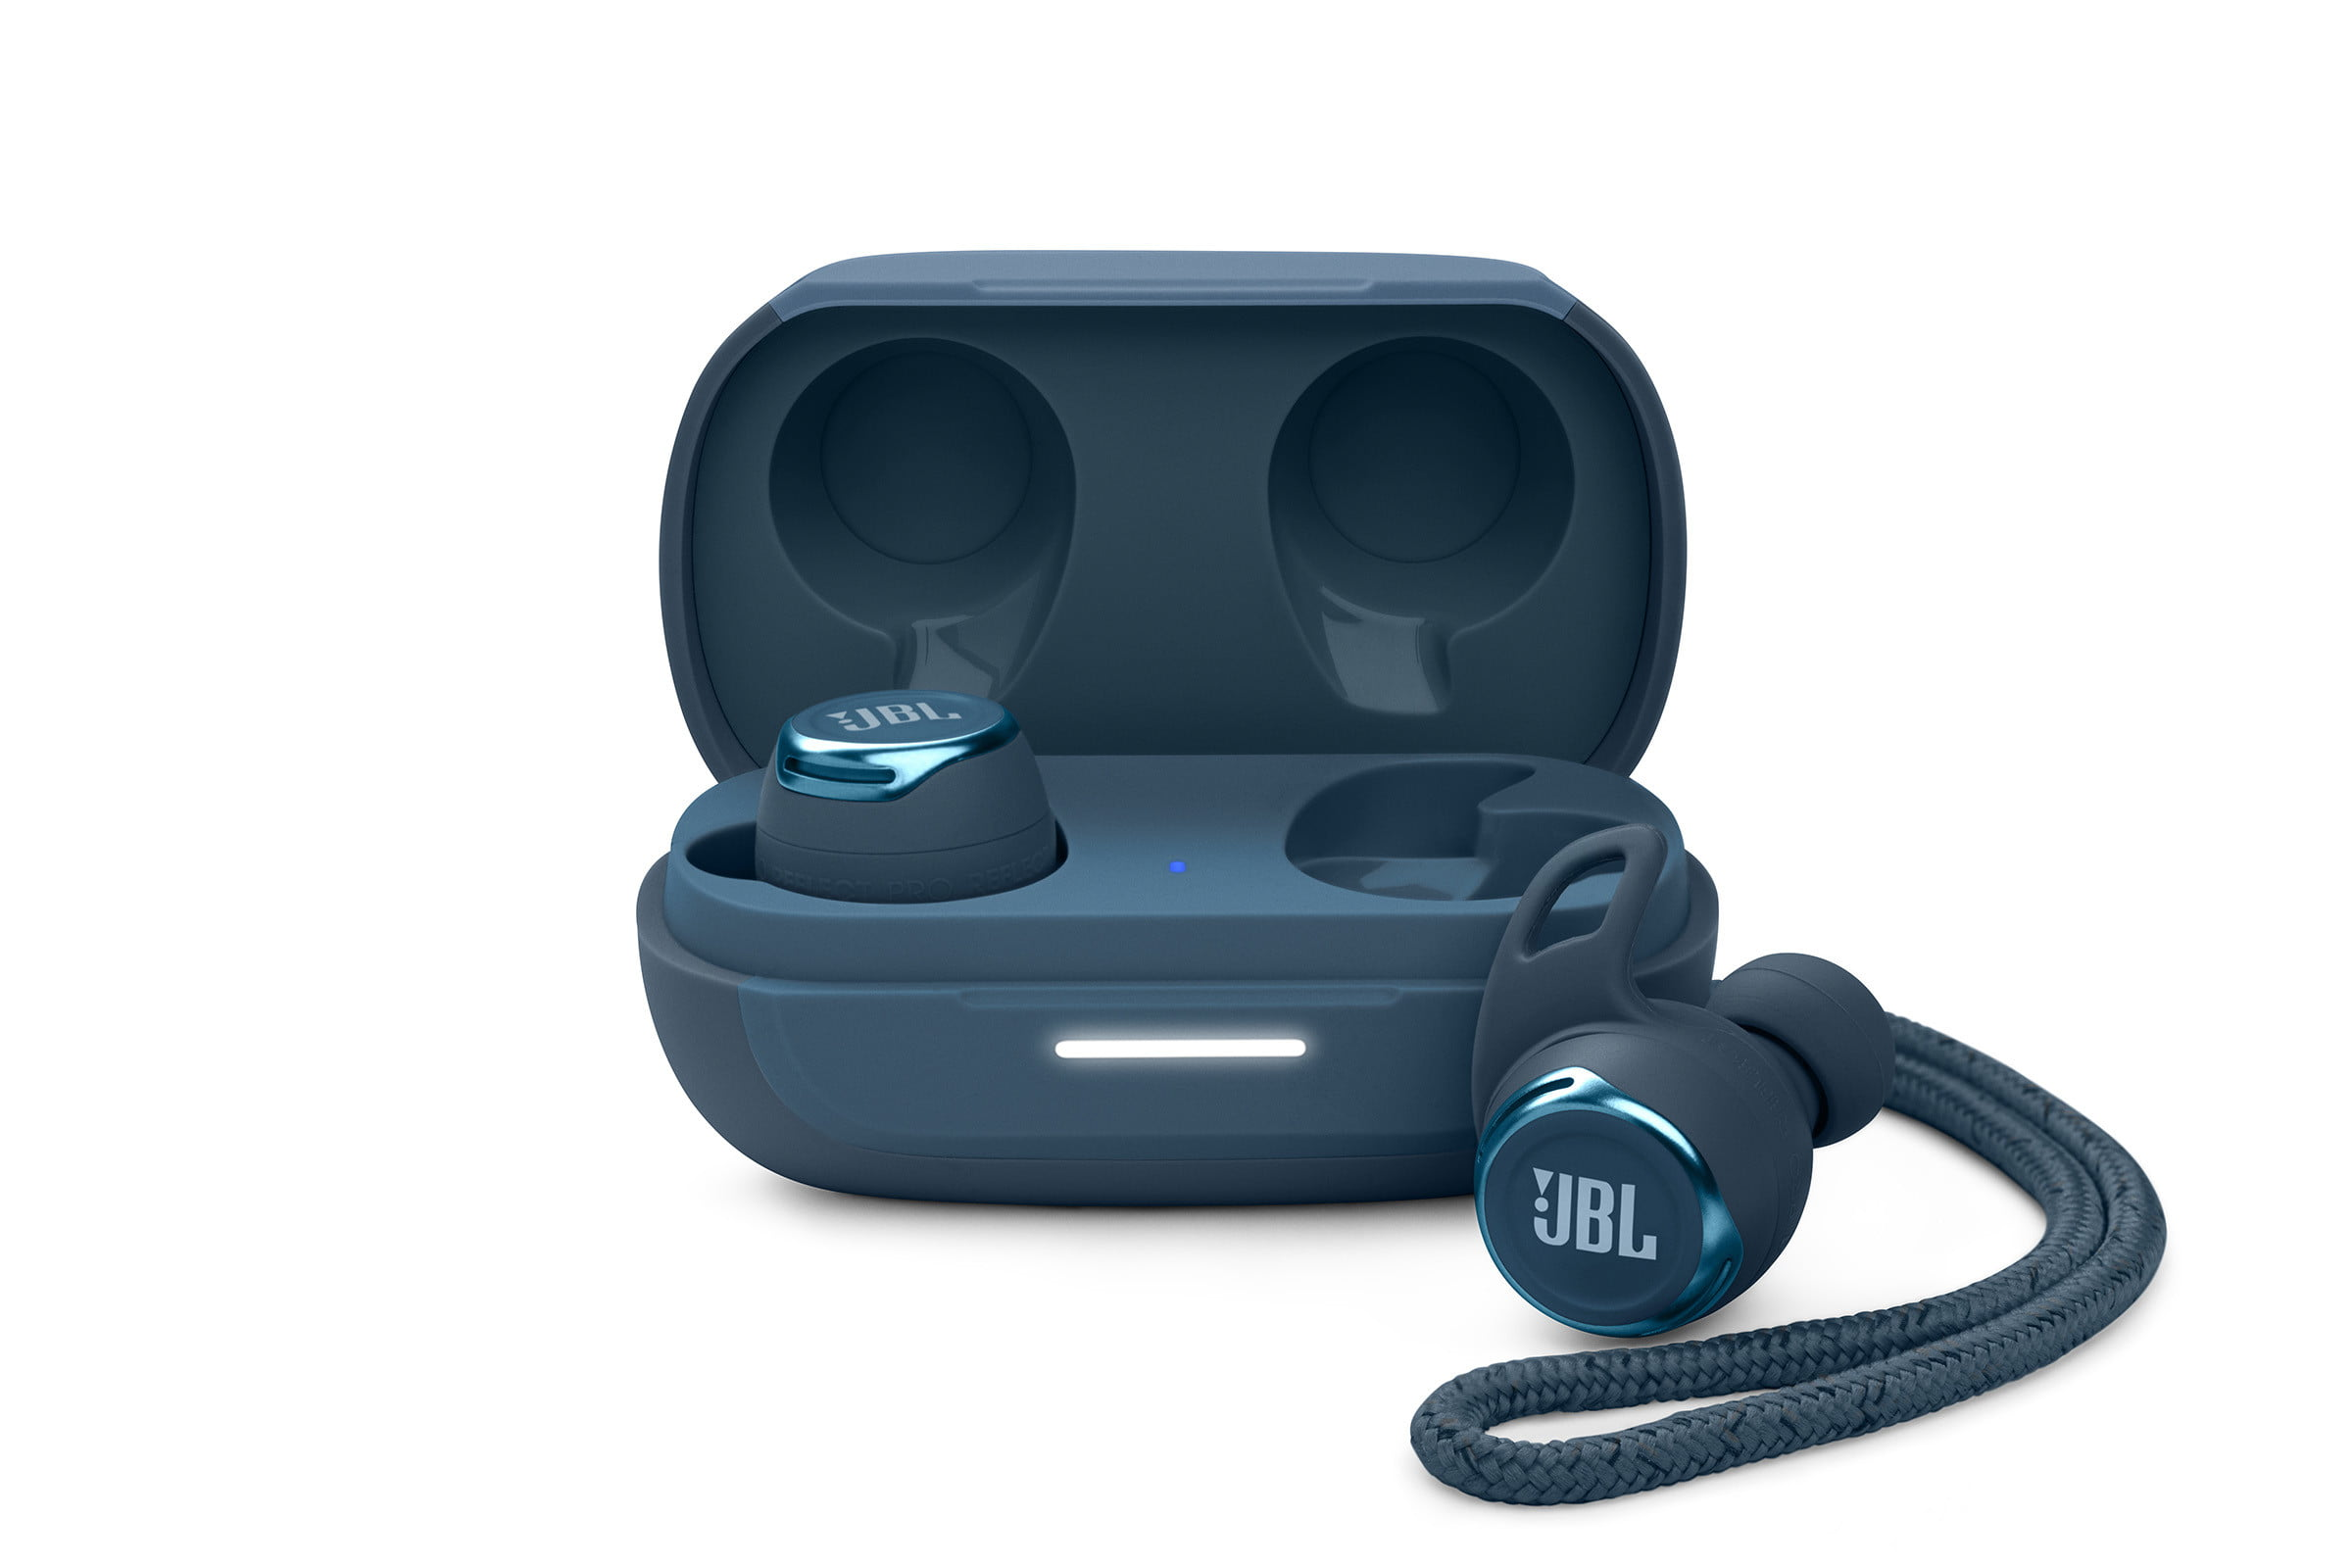 The JBL Reflect Flow Pro earbuds.